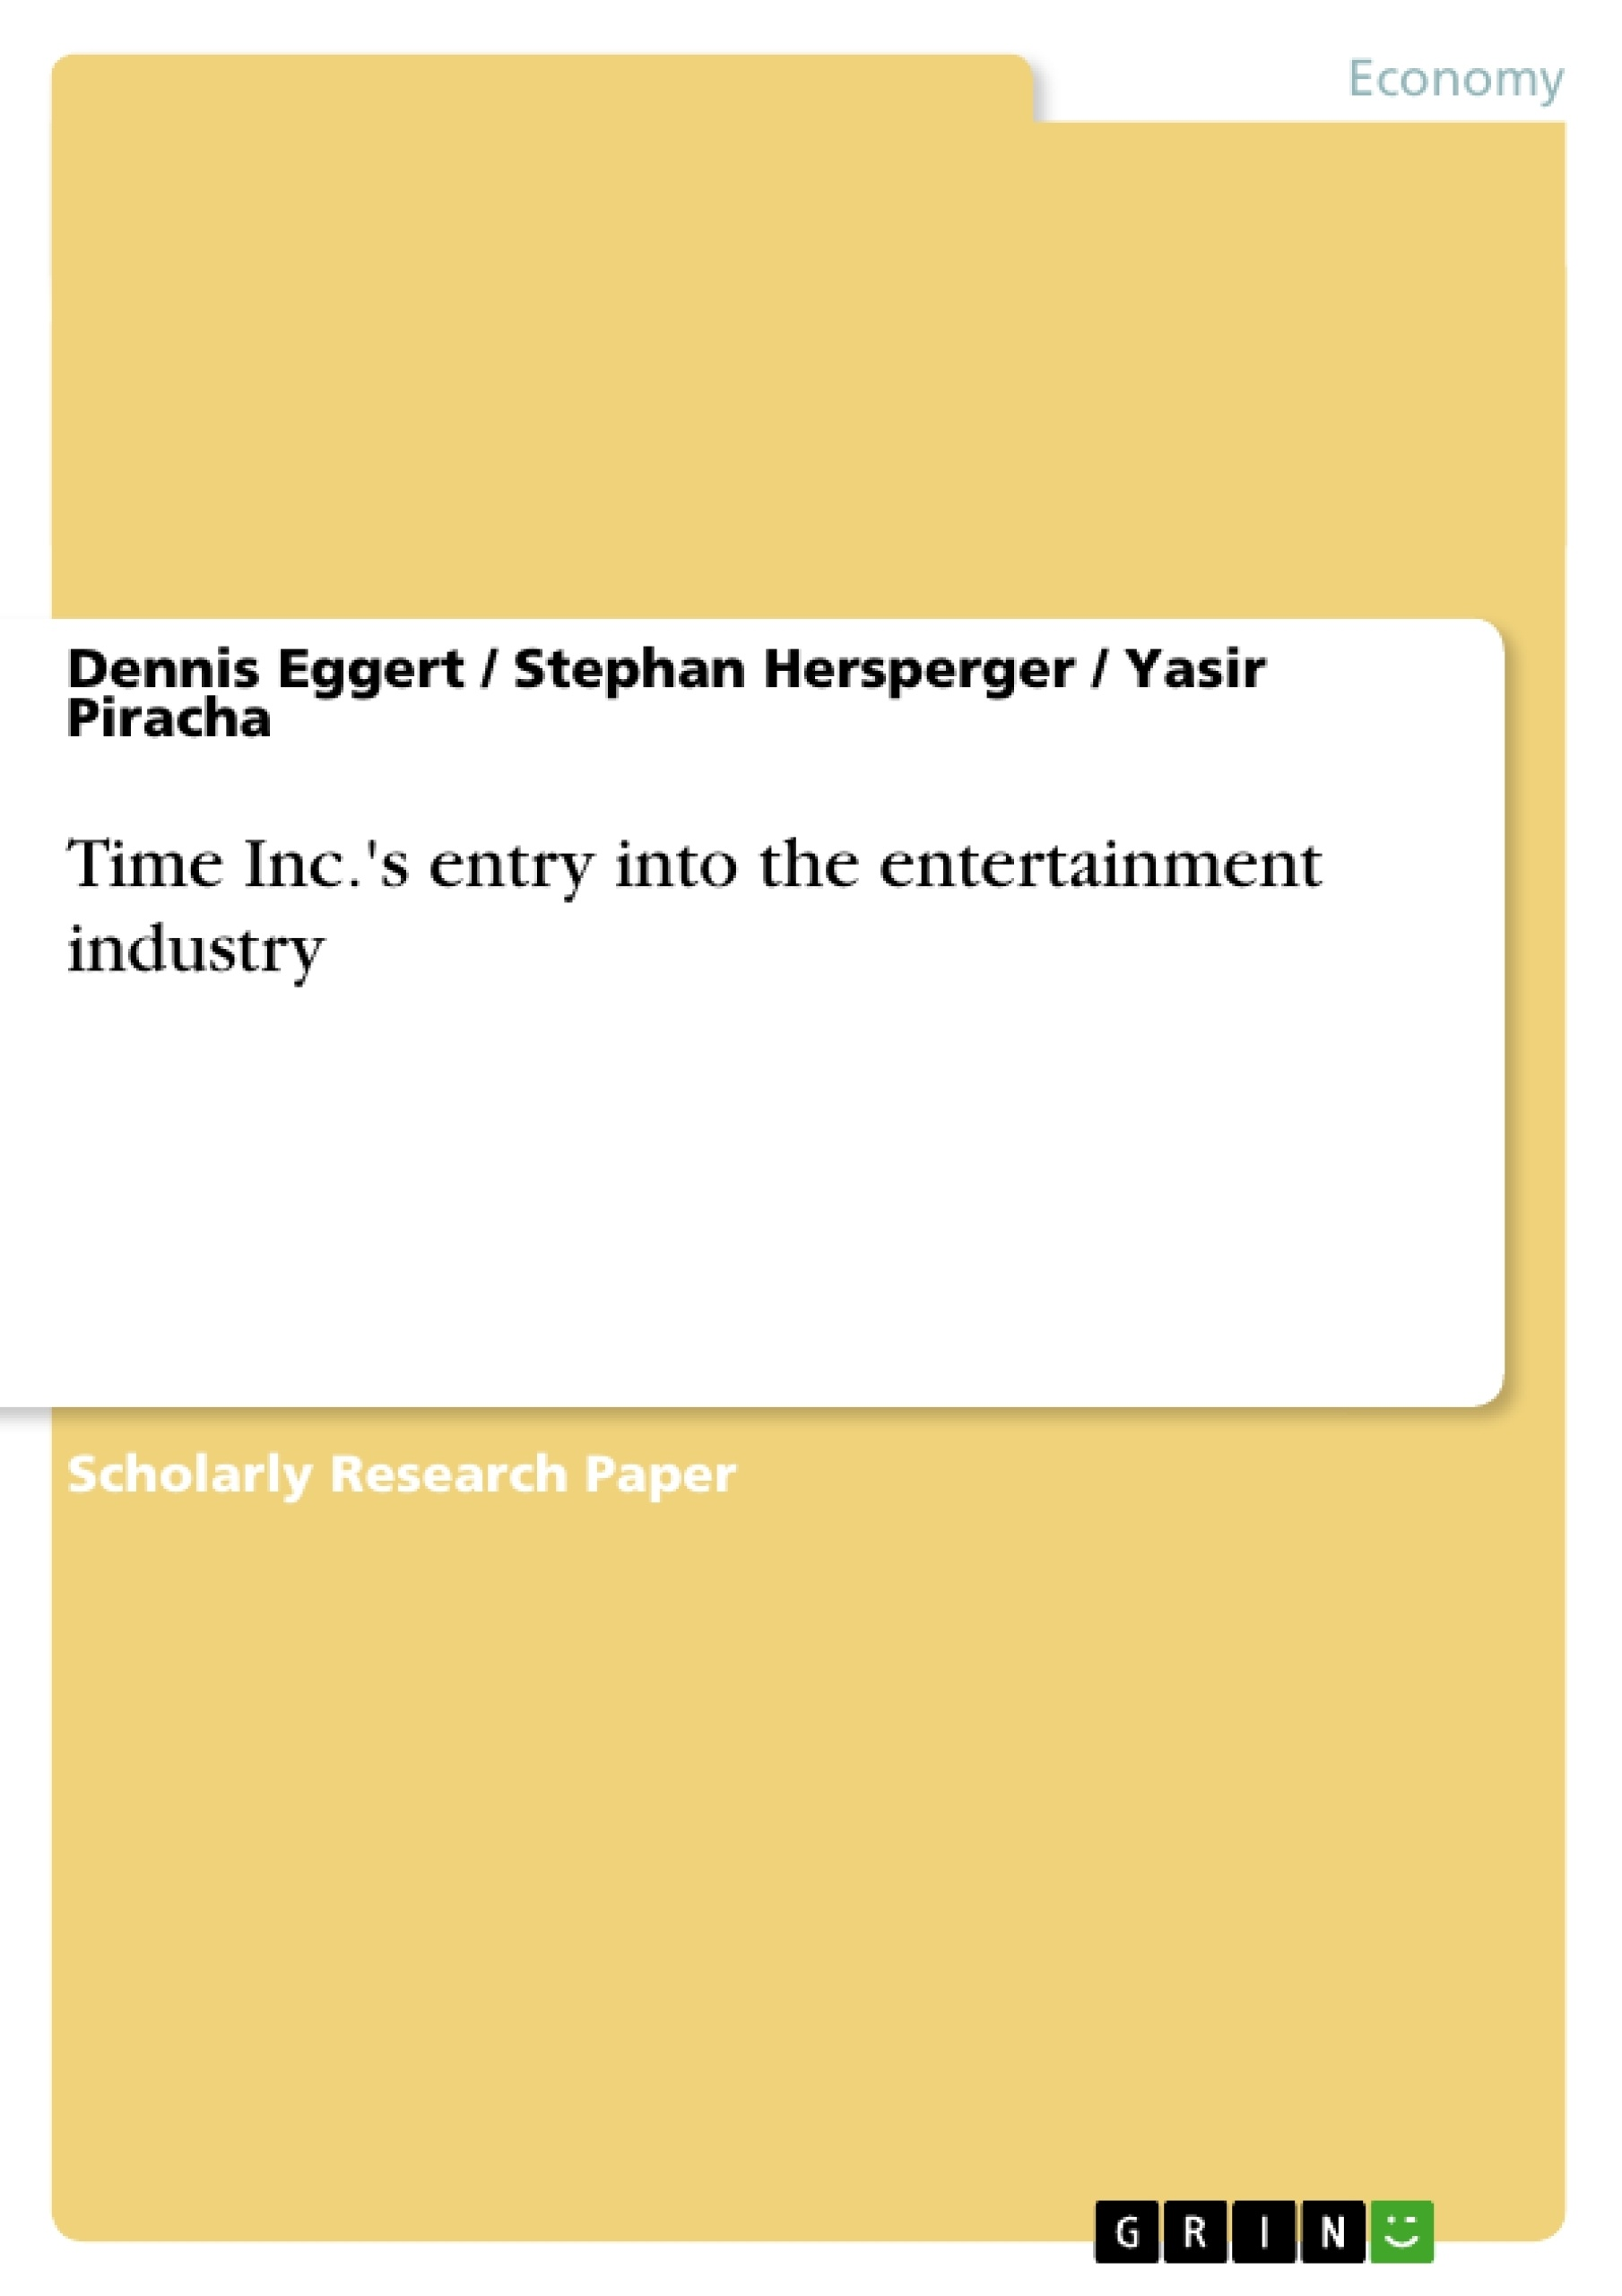 Title: Time Inc.'s entry into the entertainment industry